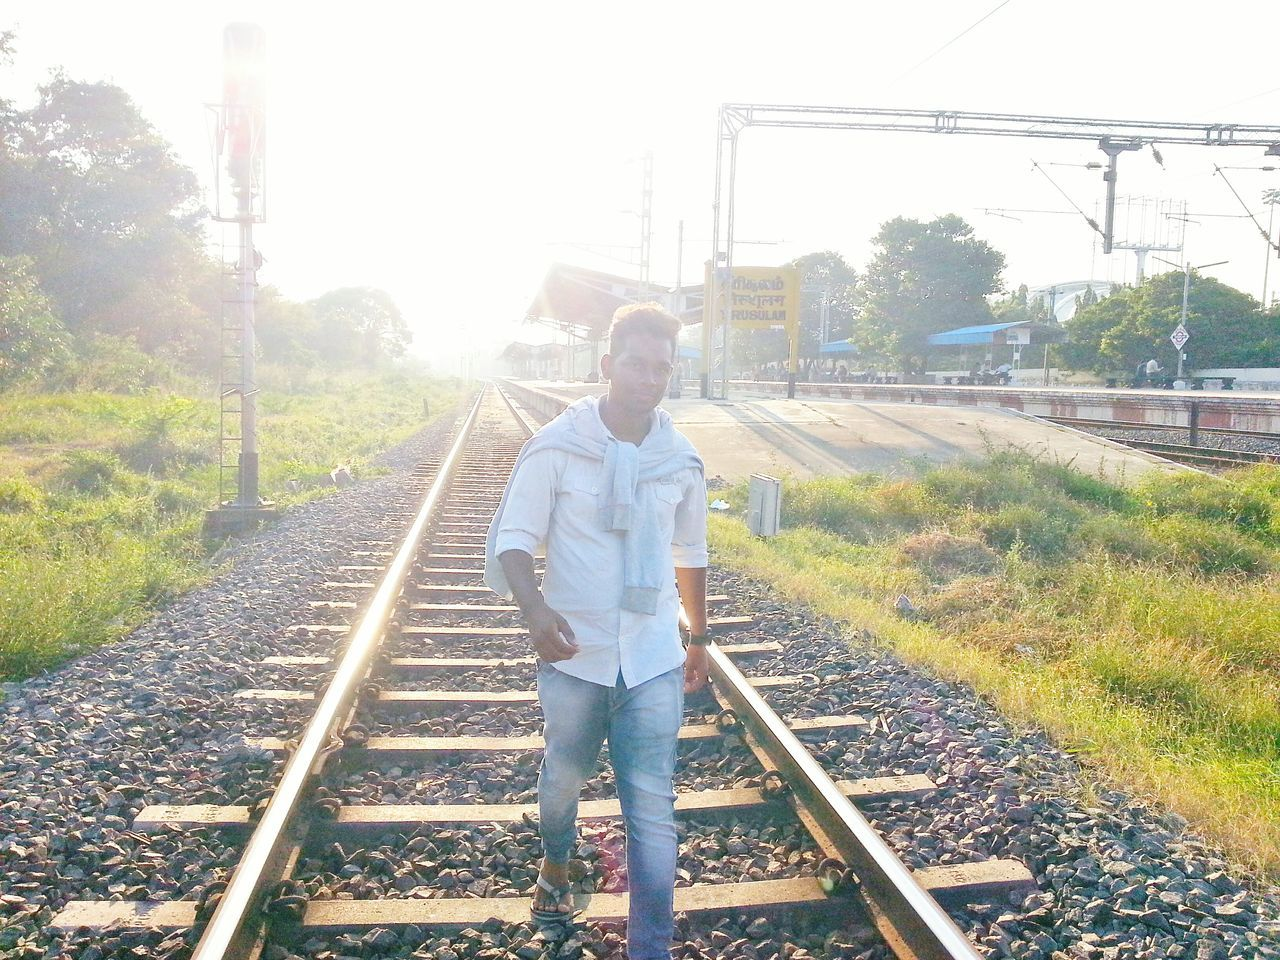 Railroad Track Full Length Rail Transportation One Person Outdoors The Way Forward Sunlight Scenics Green Green Green!  Check This Out! I Show The World What I See Sun_collection Sunset_collection EyeEm Best Shots Freshness Urban Photography Embrace Urban Life Shirts Of EyeEm Jeans Modeling Shoot Model Photography Mensfashion